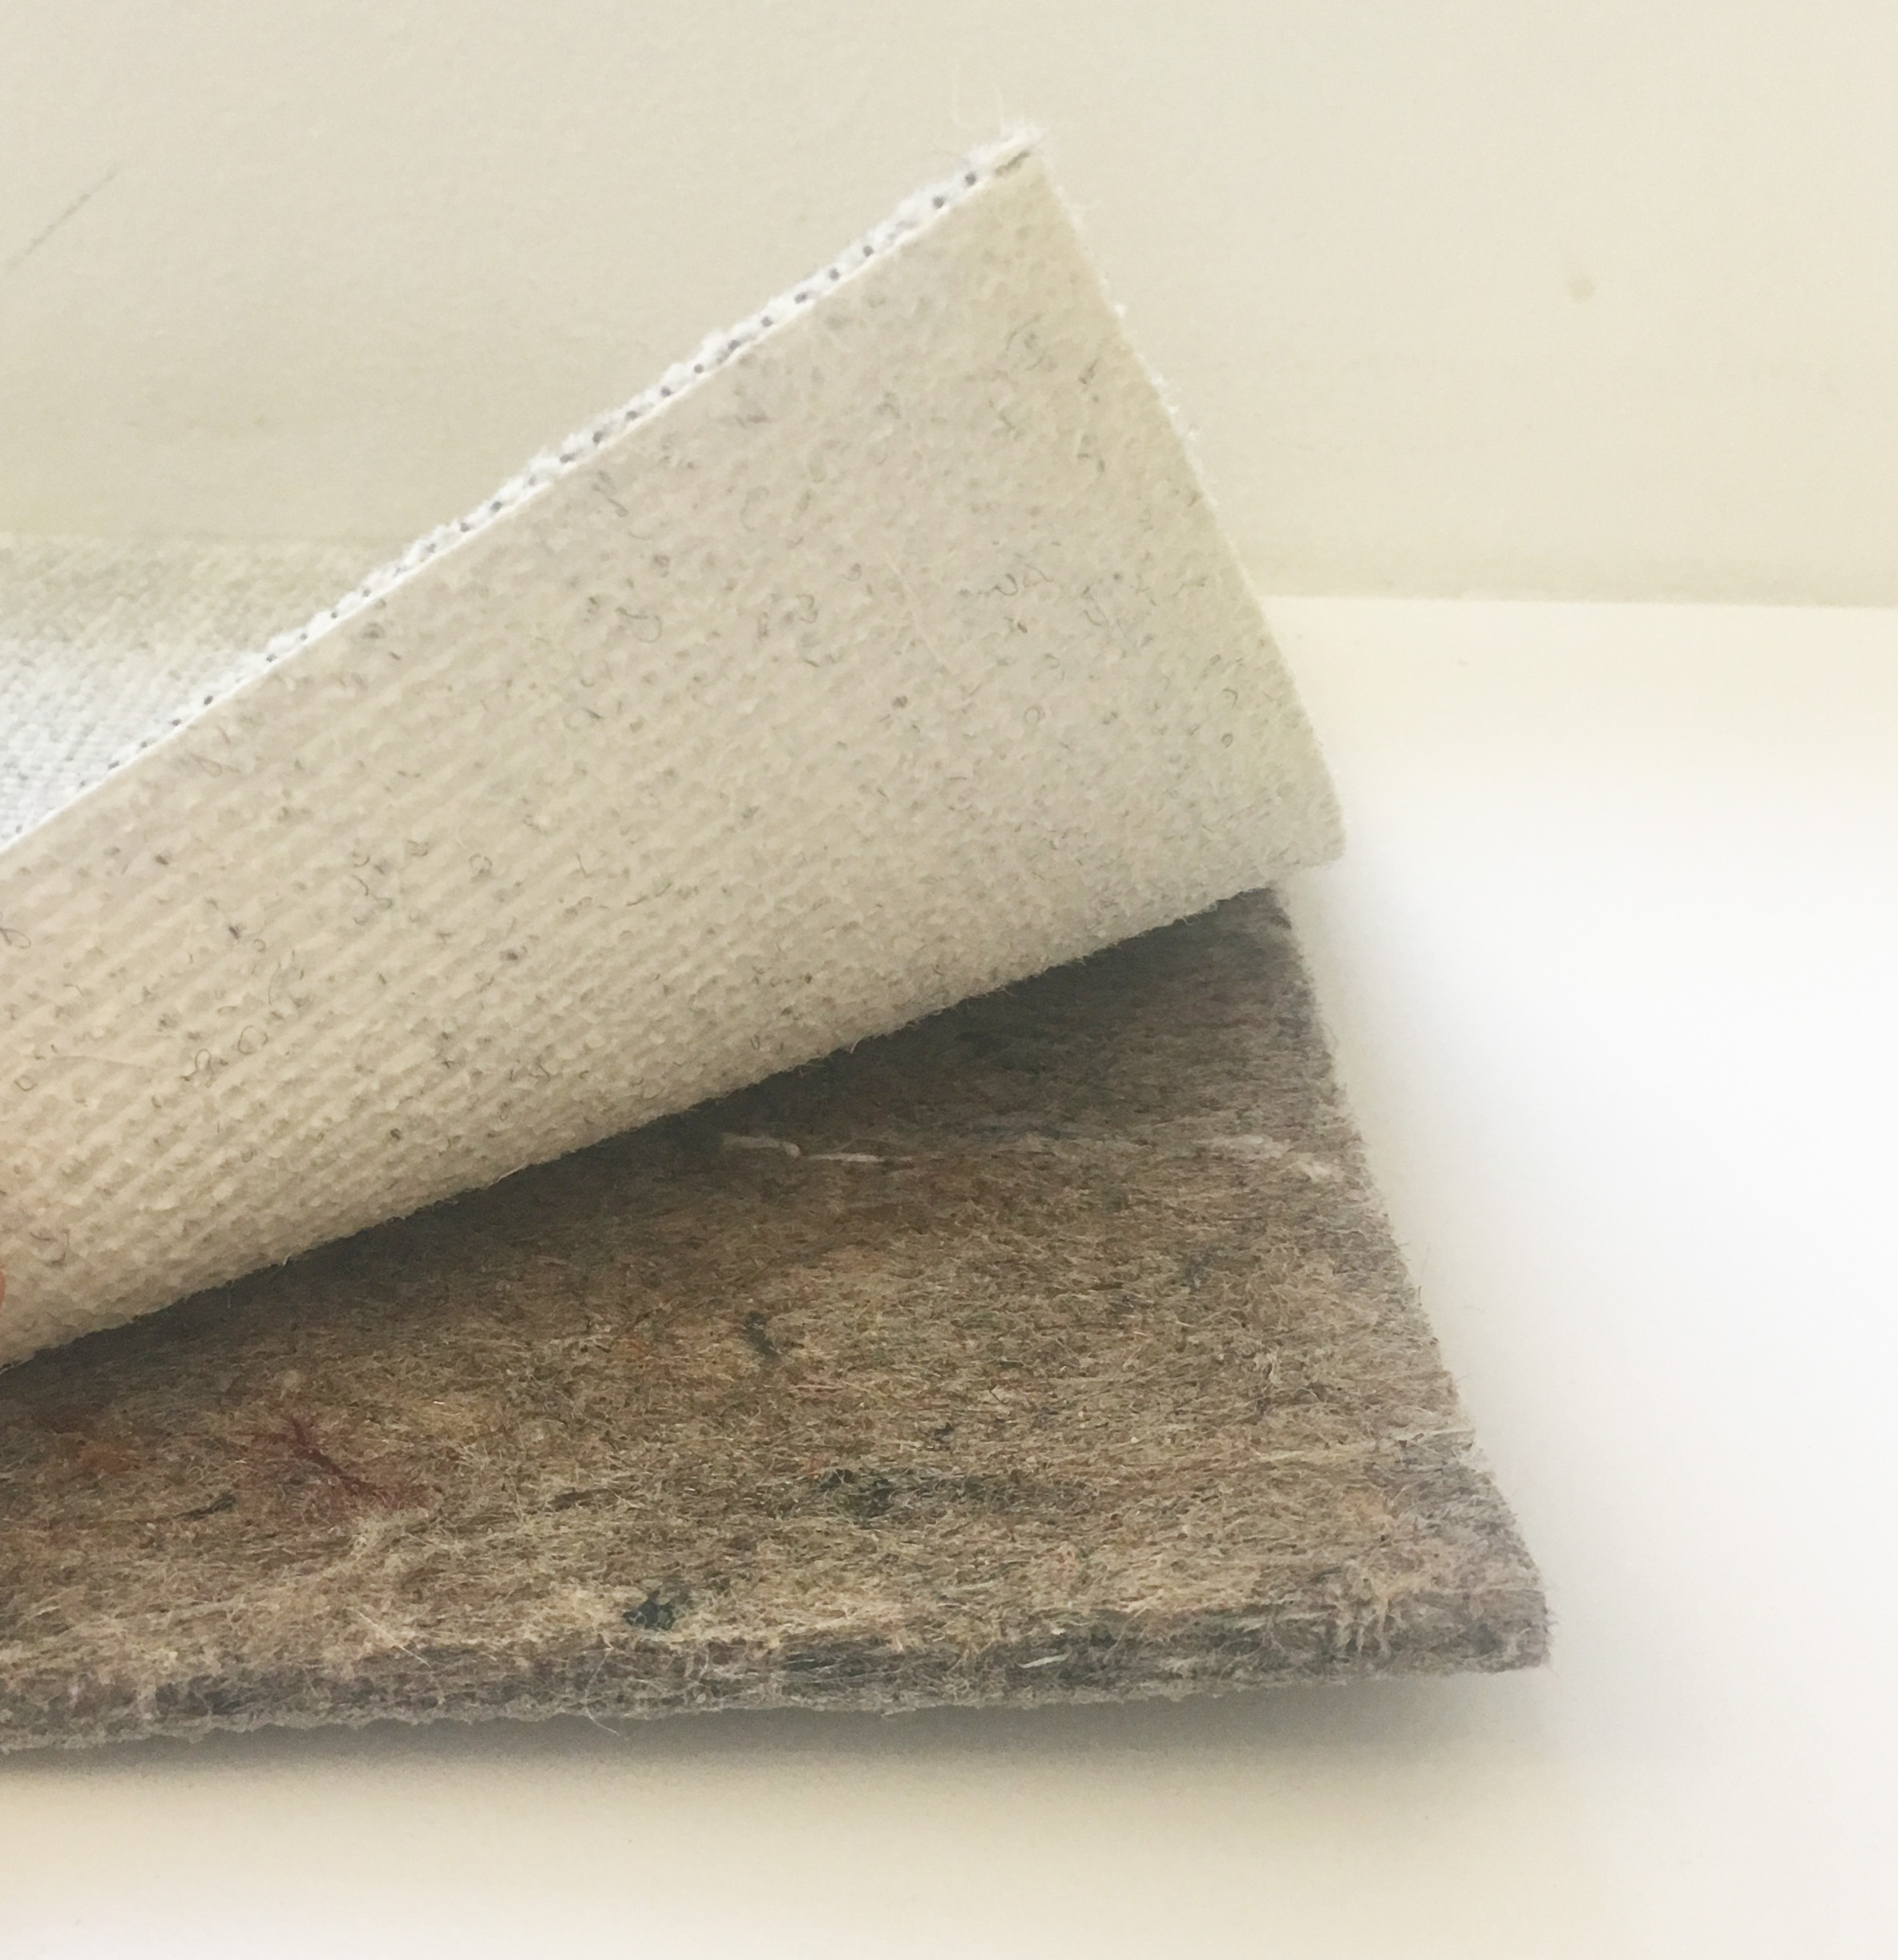 Sisal Rug Got Wet: Why Is A Rug Pad Necessary And Who Do We Recommend